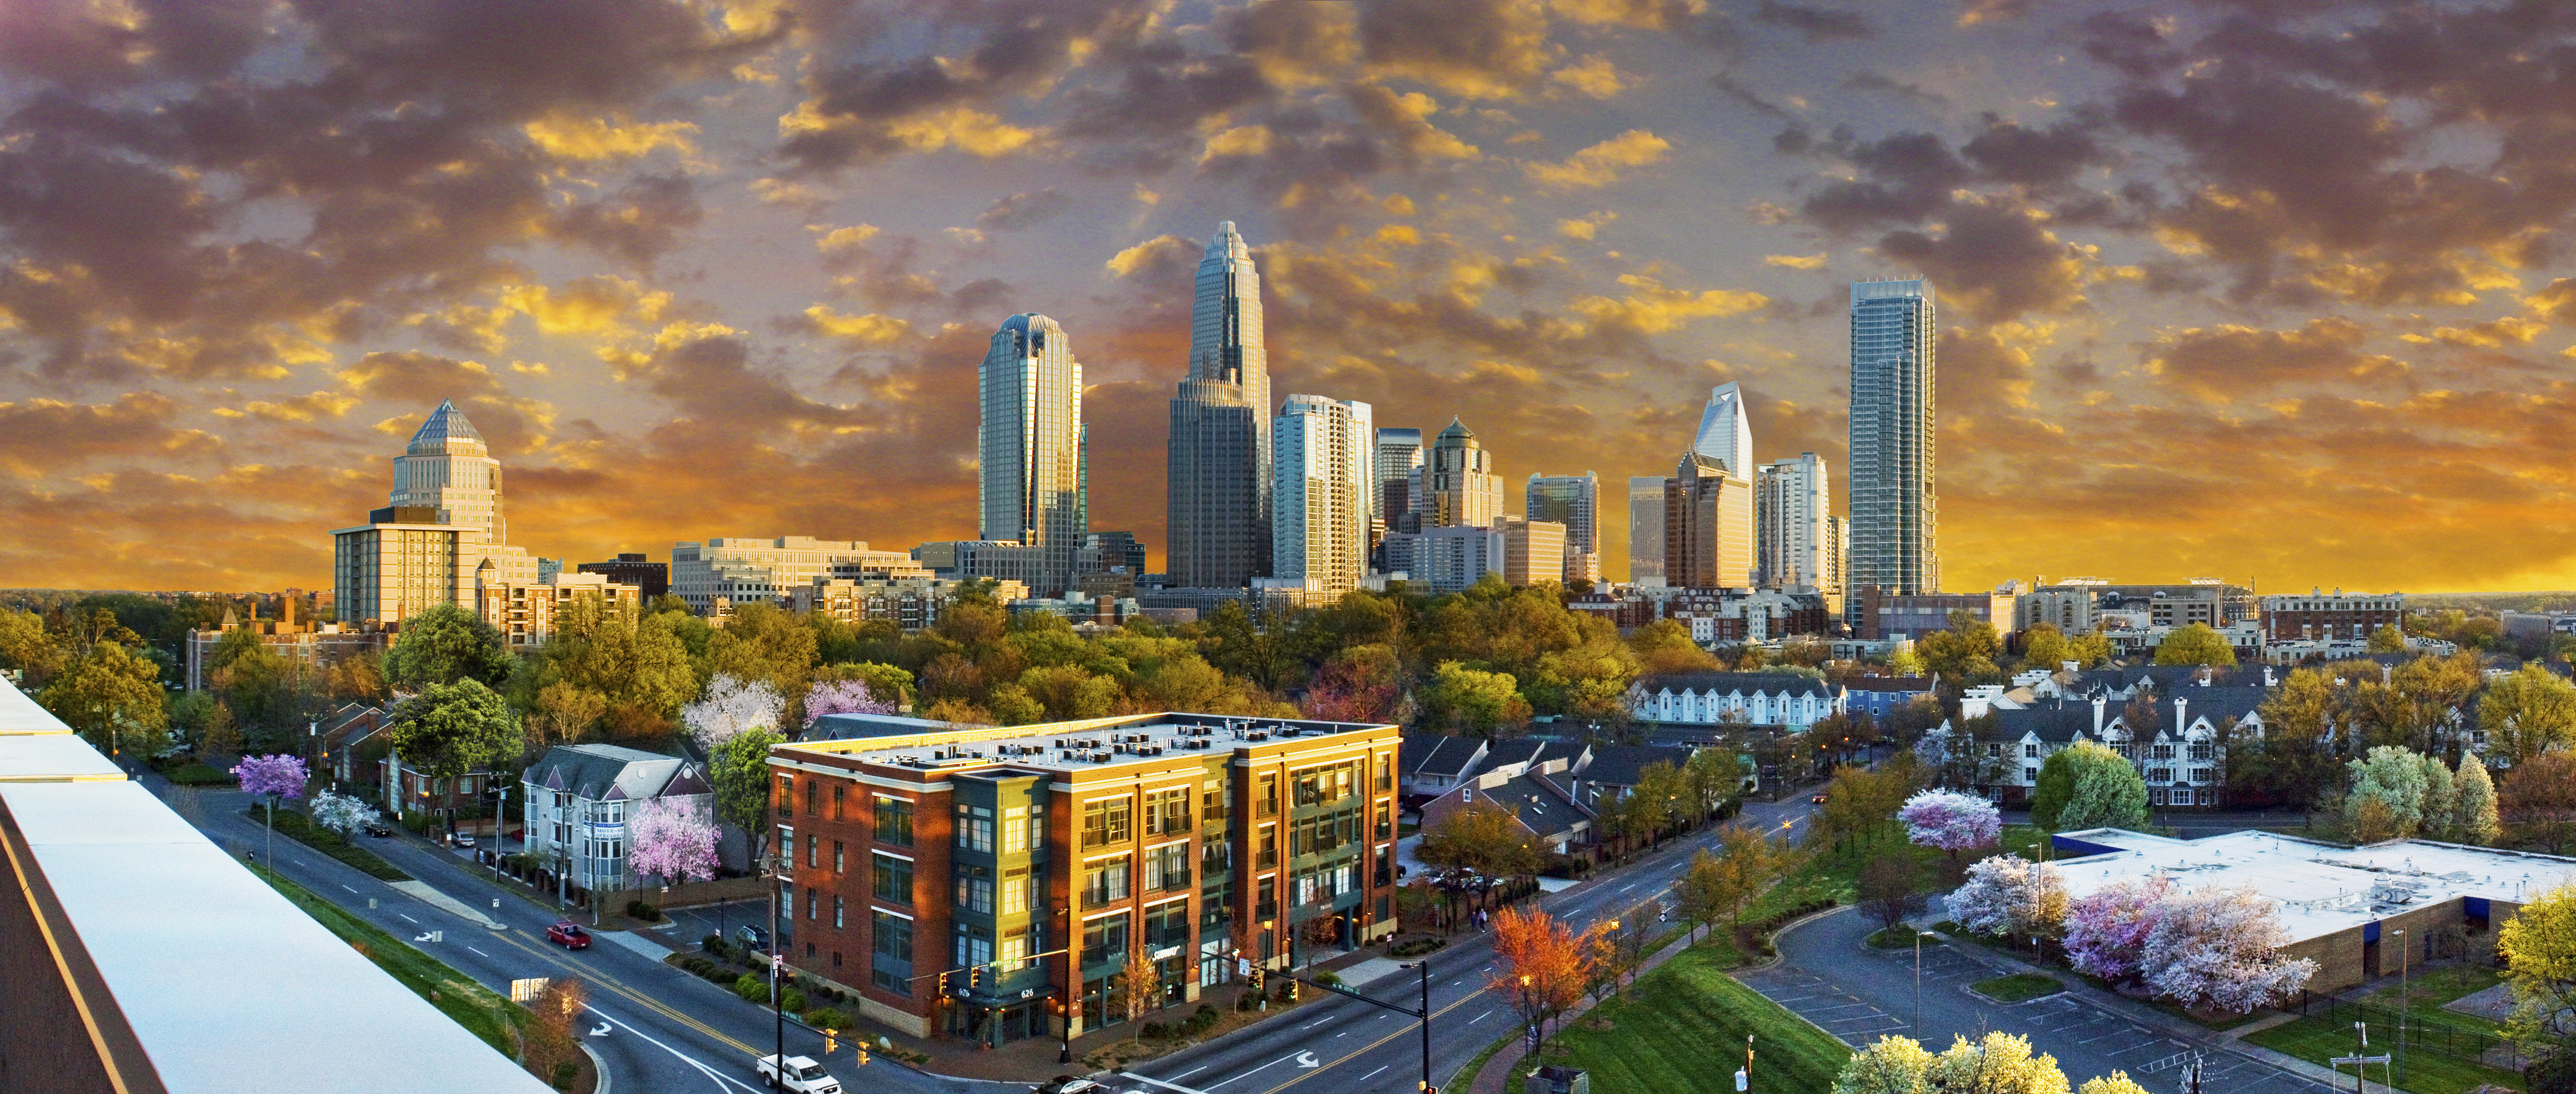 Charlotte NC Was Just Ranked Among The Top 20 Best Places To Live In America Study Recently Conducted By US News World Report Them One Spot